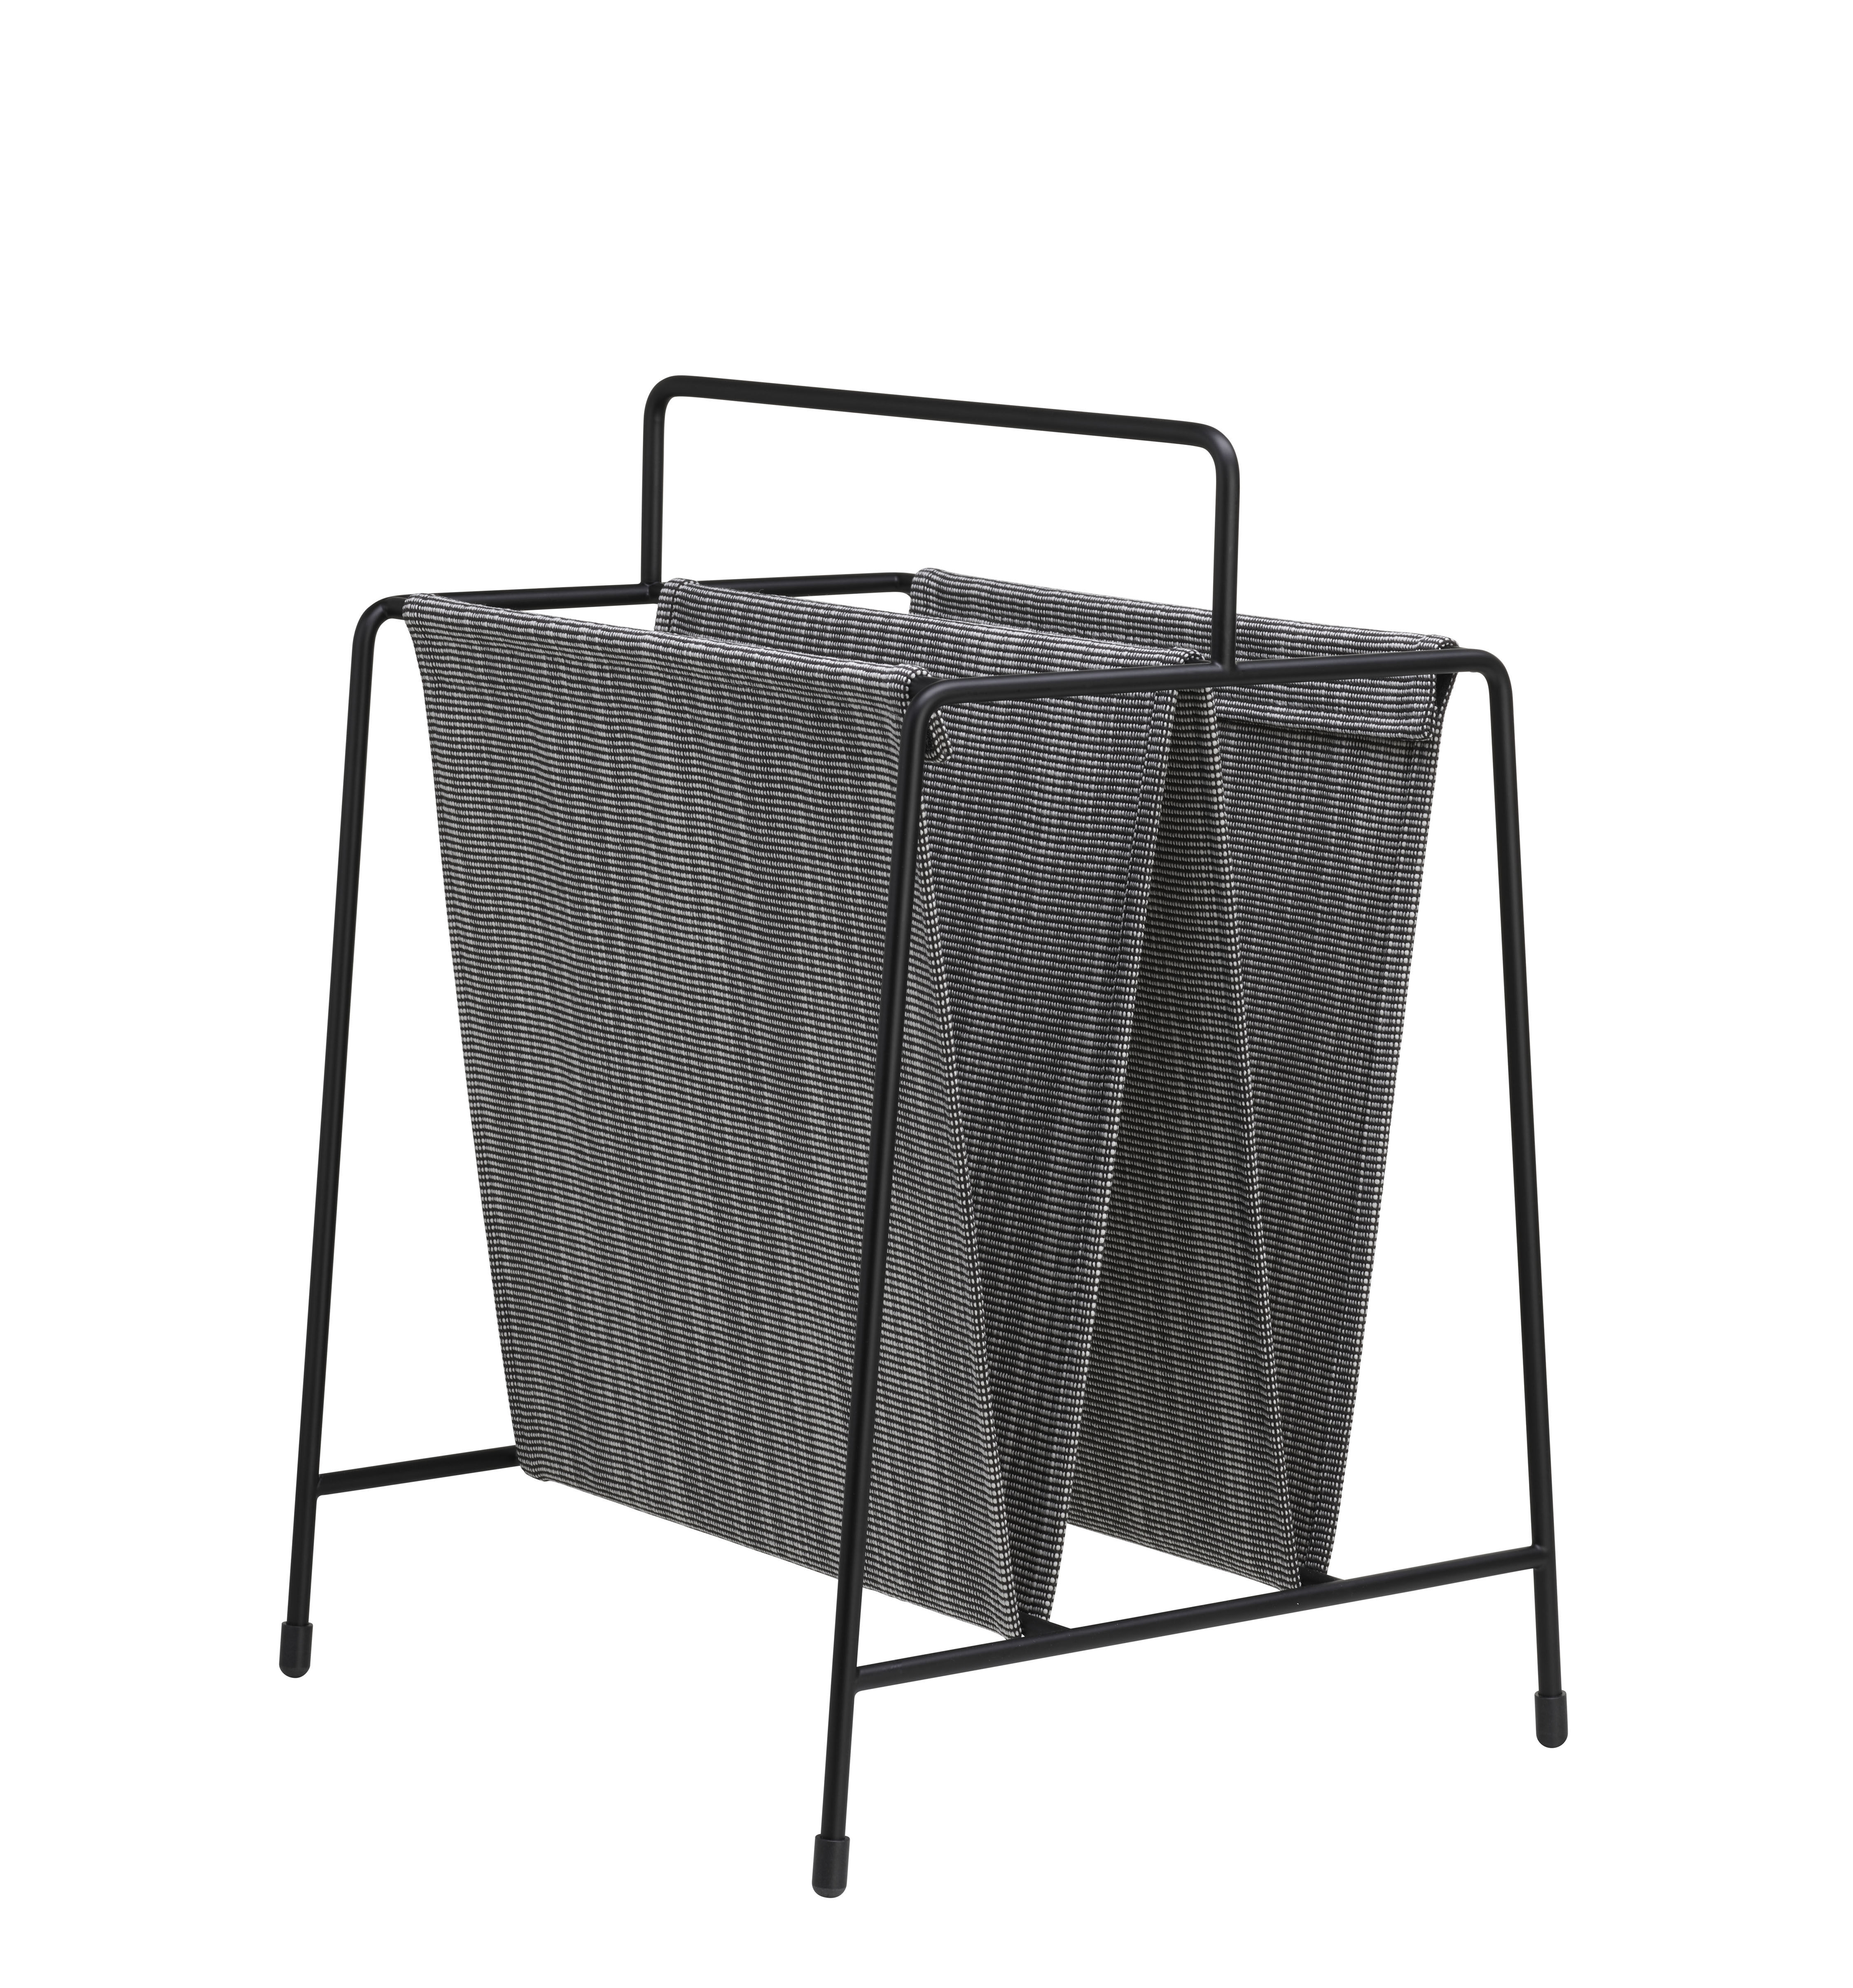 Decoration - Boxes & Baskets - Magazine holder - / 50s reissue - Fabric by Fritz Hansen - Grey & black - Fabric, Powder coated steel